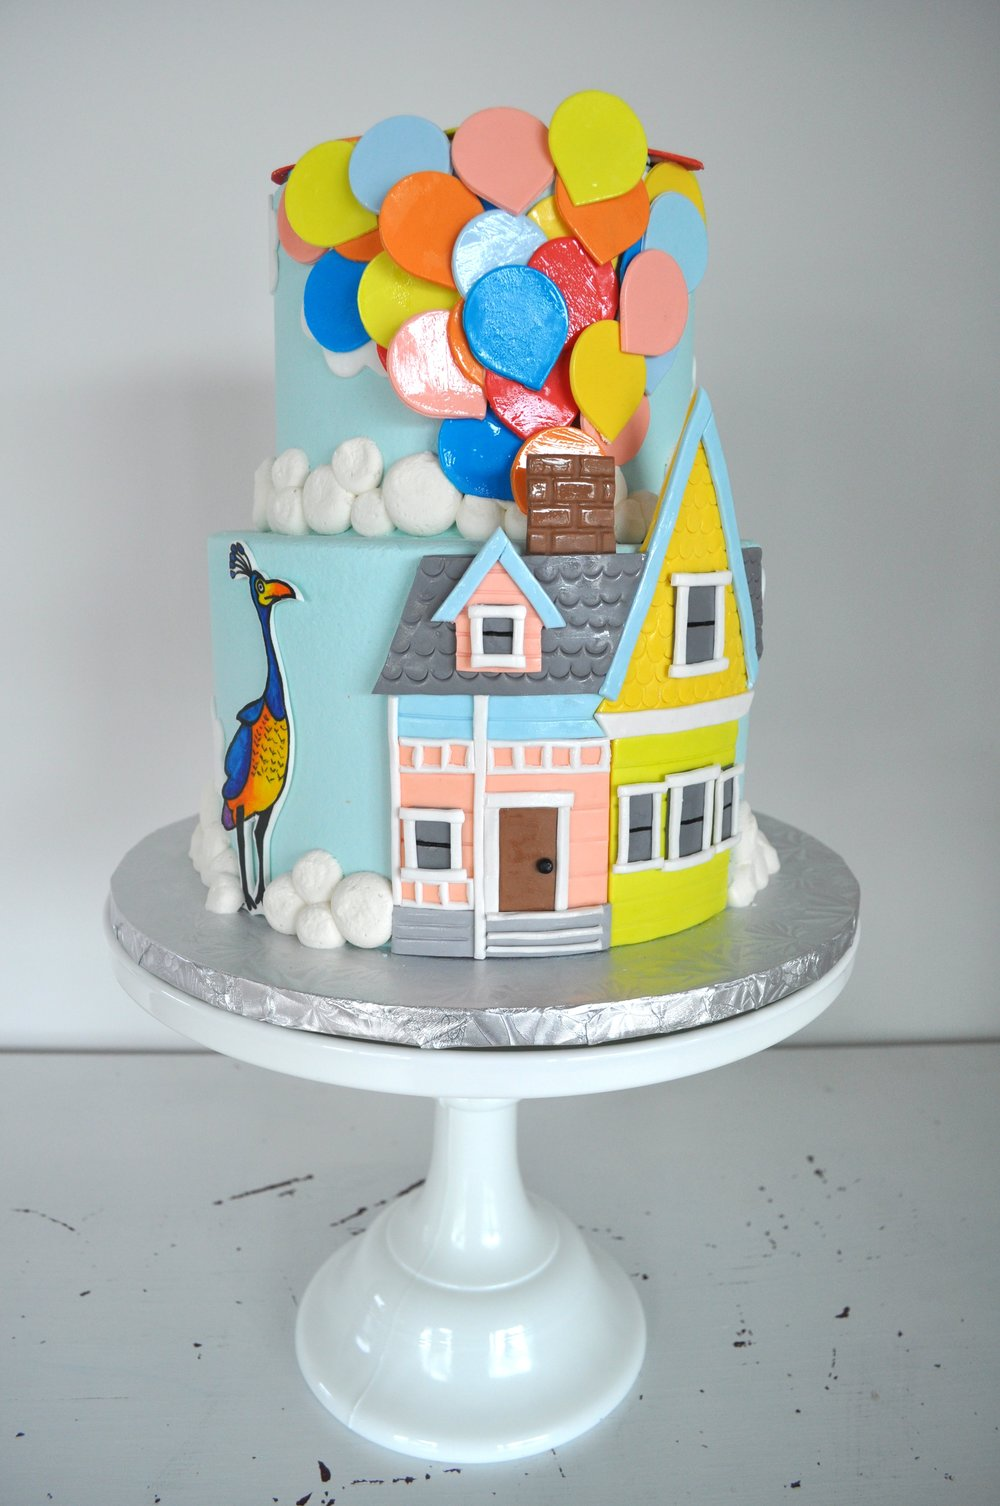 Up Cake With Bird.jpg